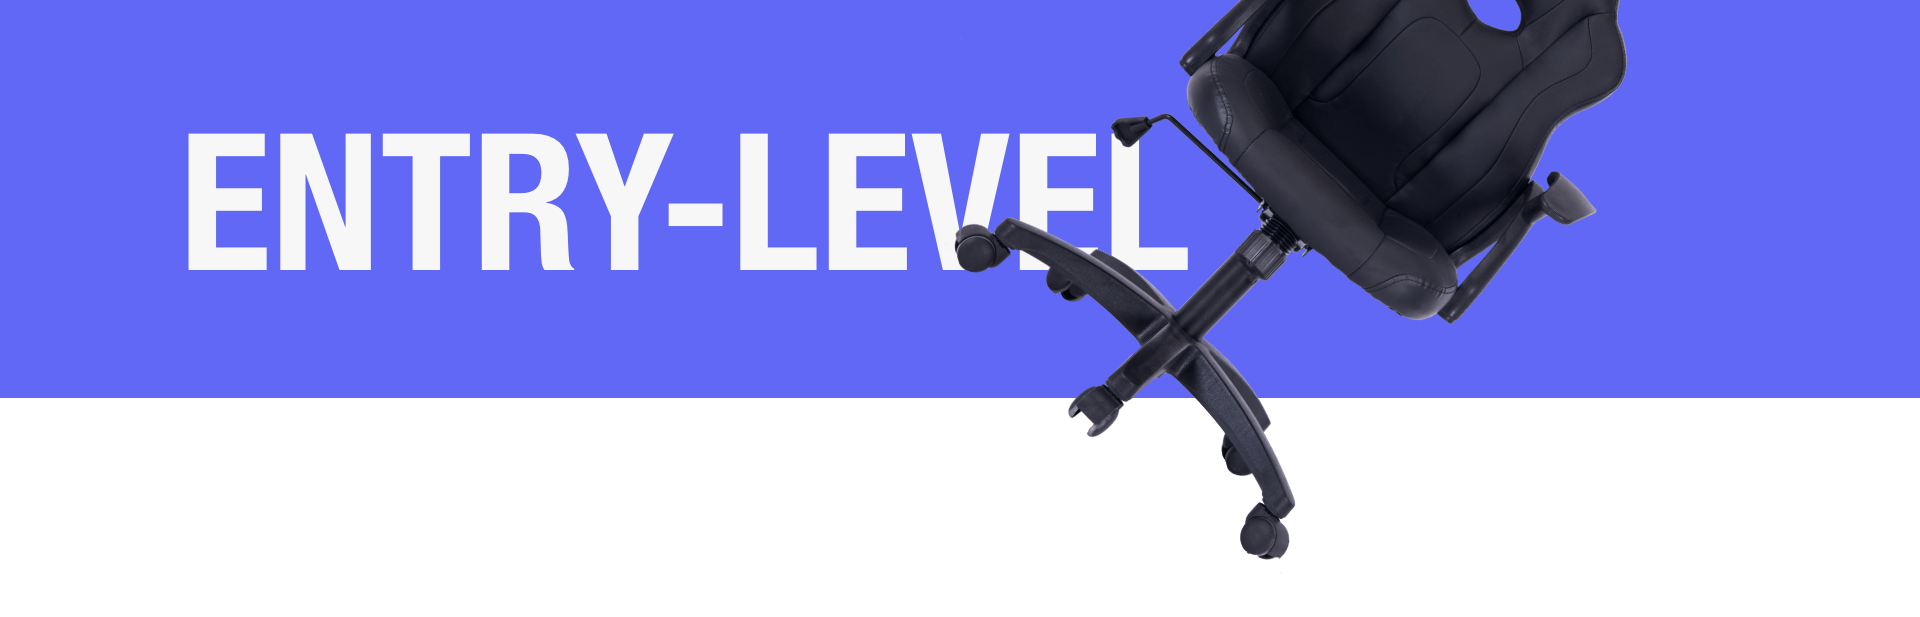 Entry-level Gaming Chairs